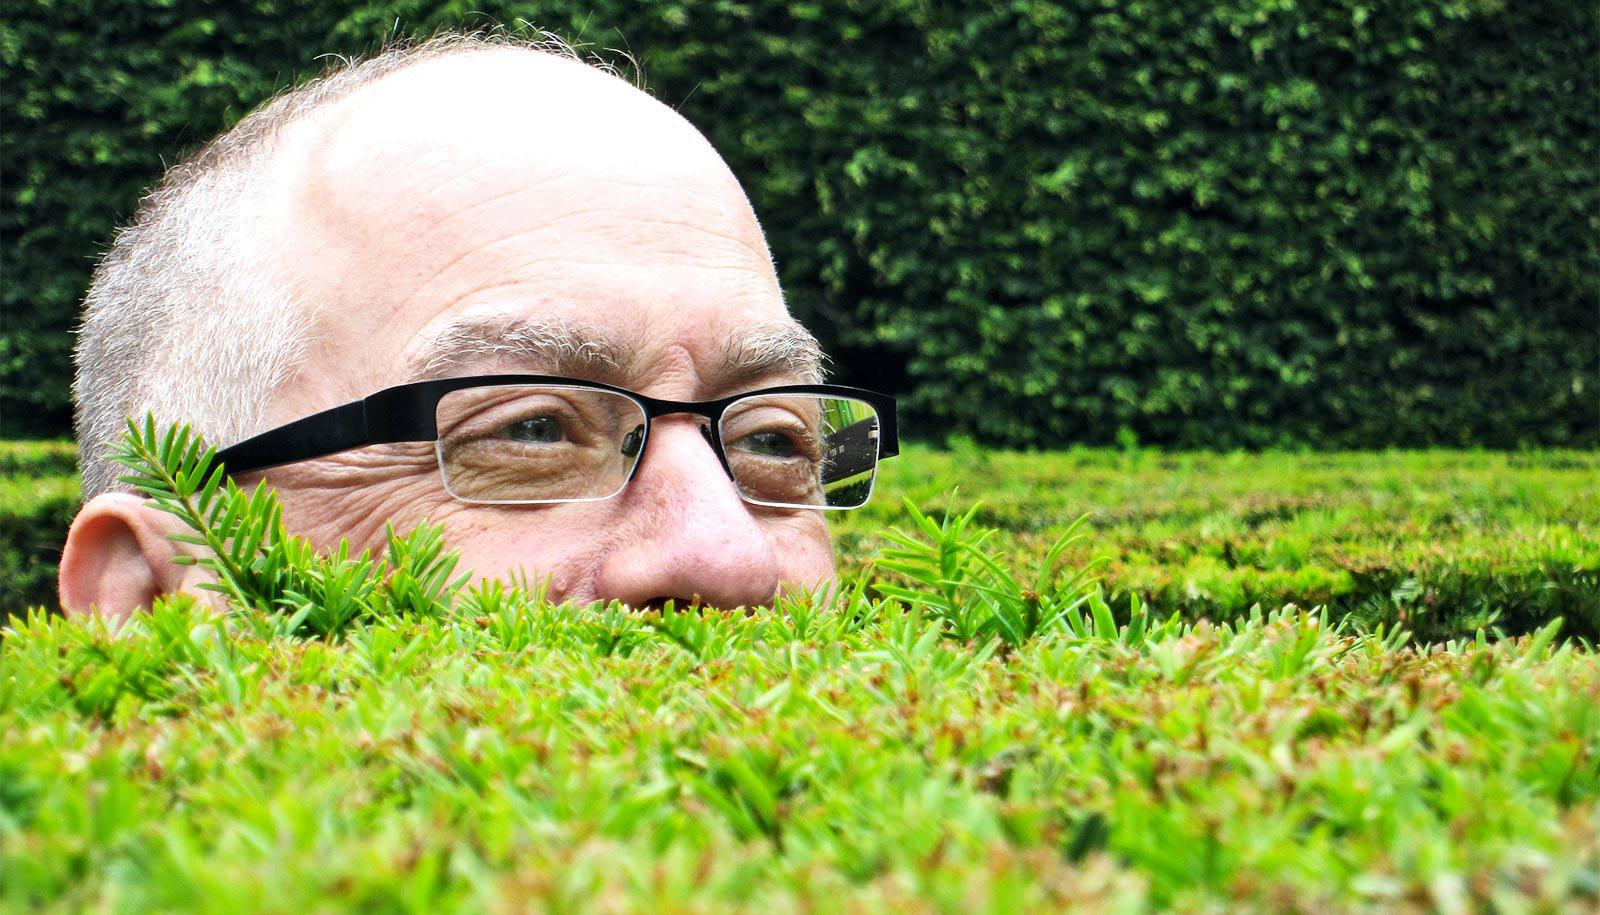 A man wearing glasses pokes his head above a hedge maze